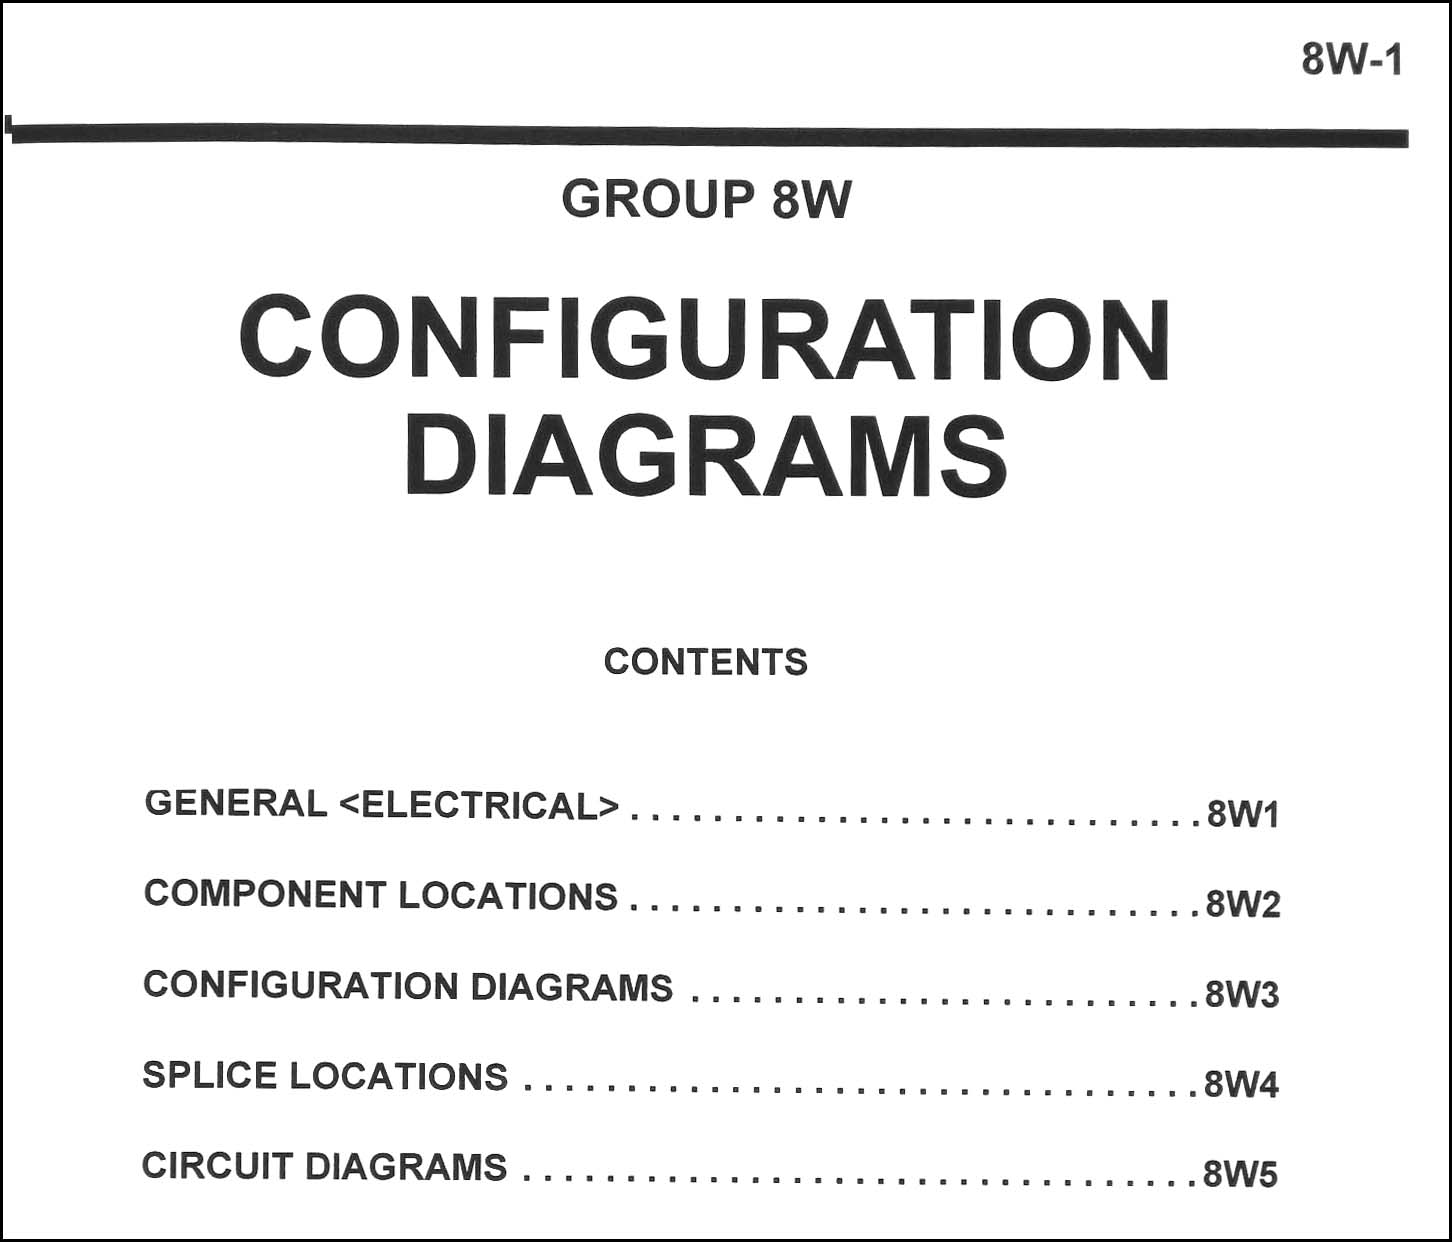 wiring diagram for a 1997 dodge stratus 39 wiring. Black Bedroom Furniture Sets. Home Design Ideas